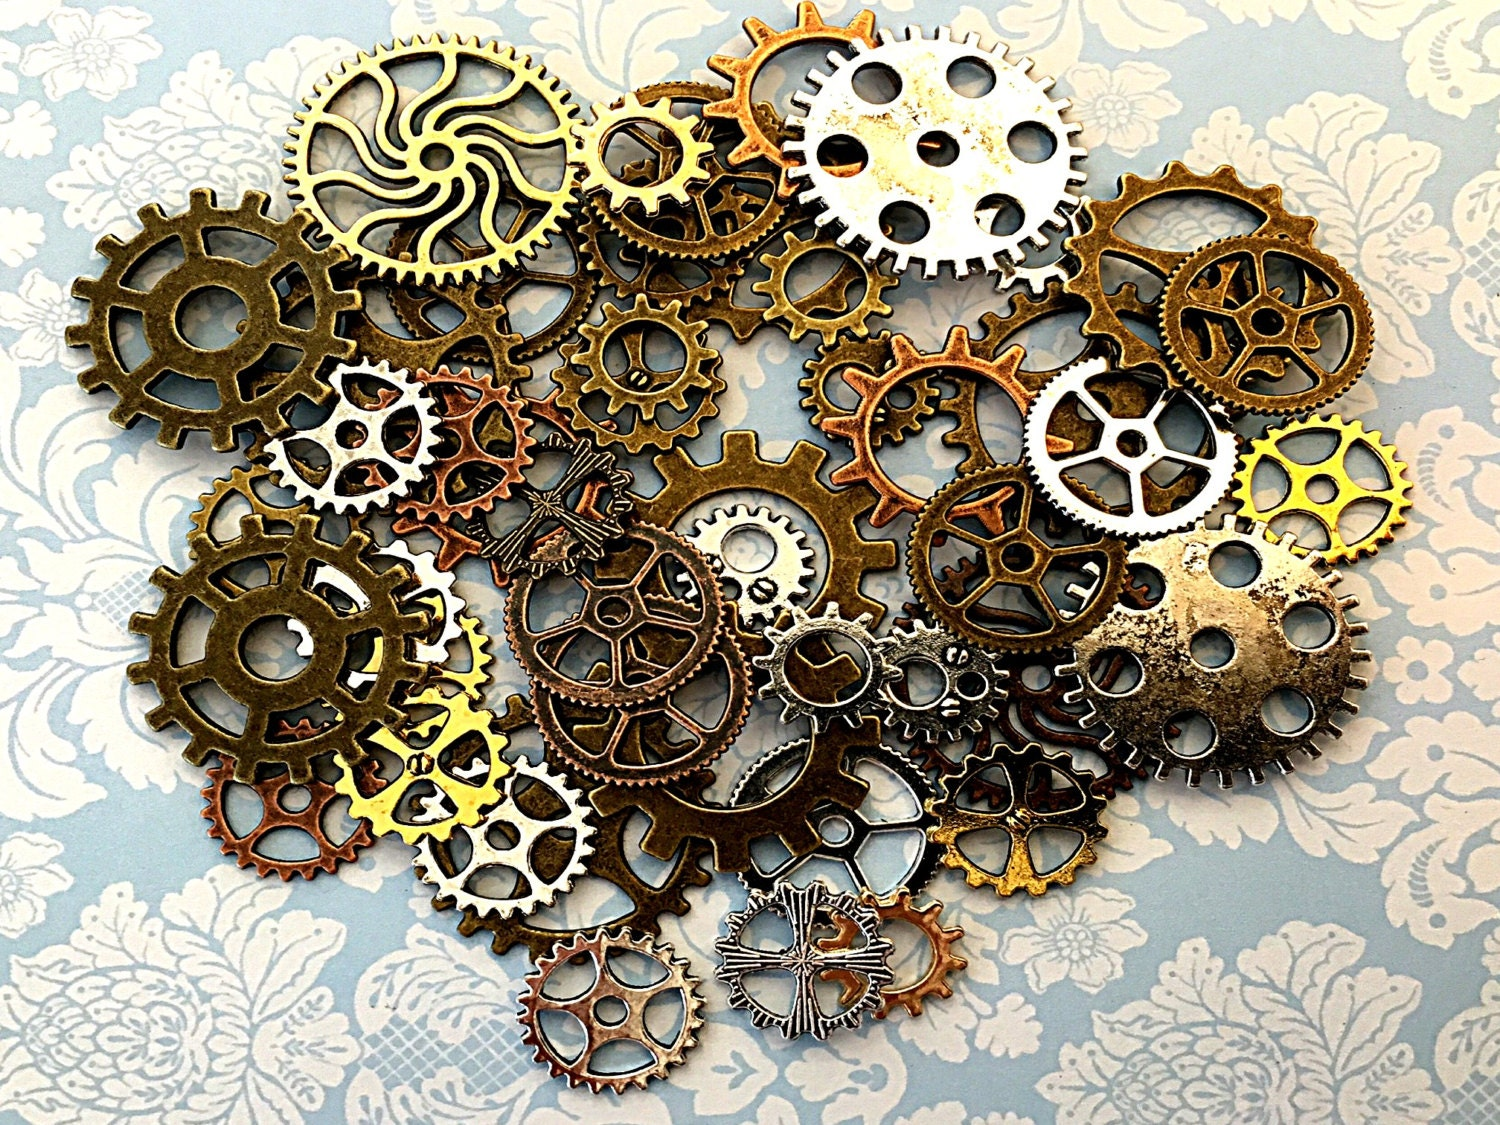 160 steampunk gears cogs buttons watch parts altered art for Steampunk arts and crafts